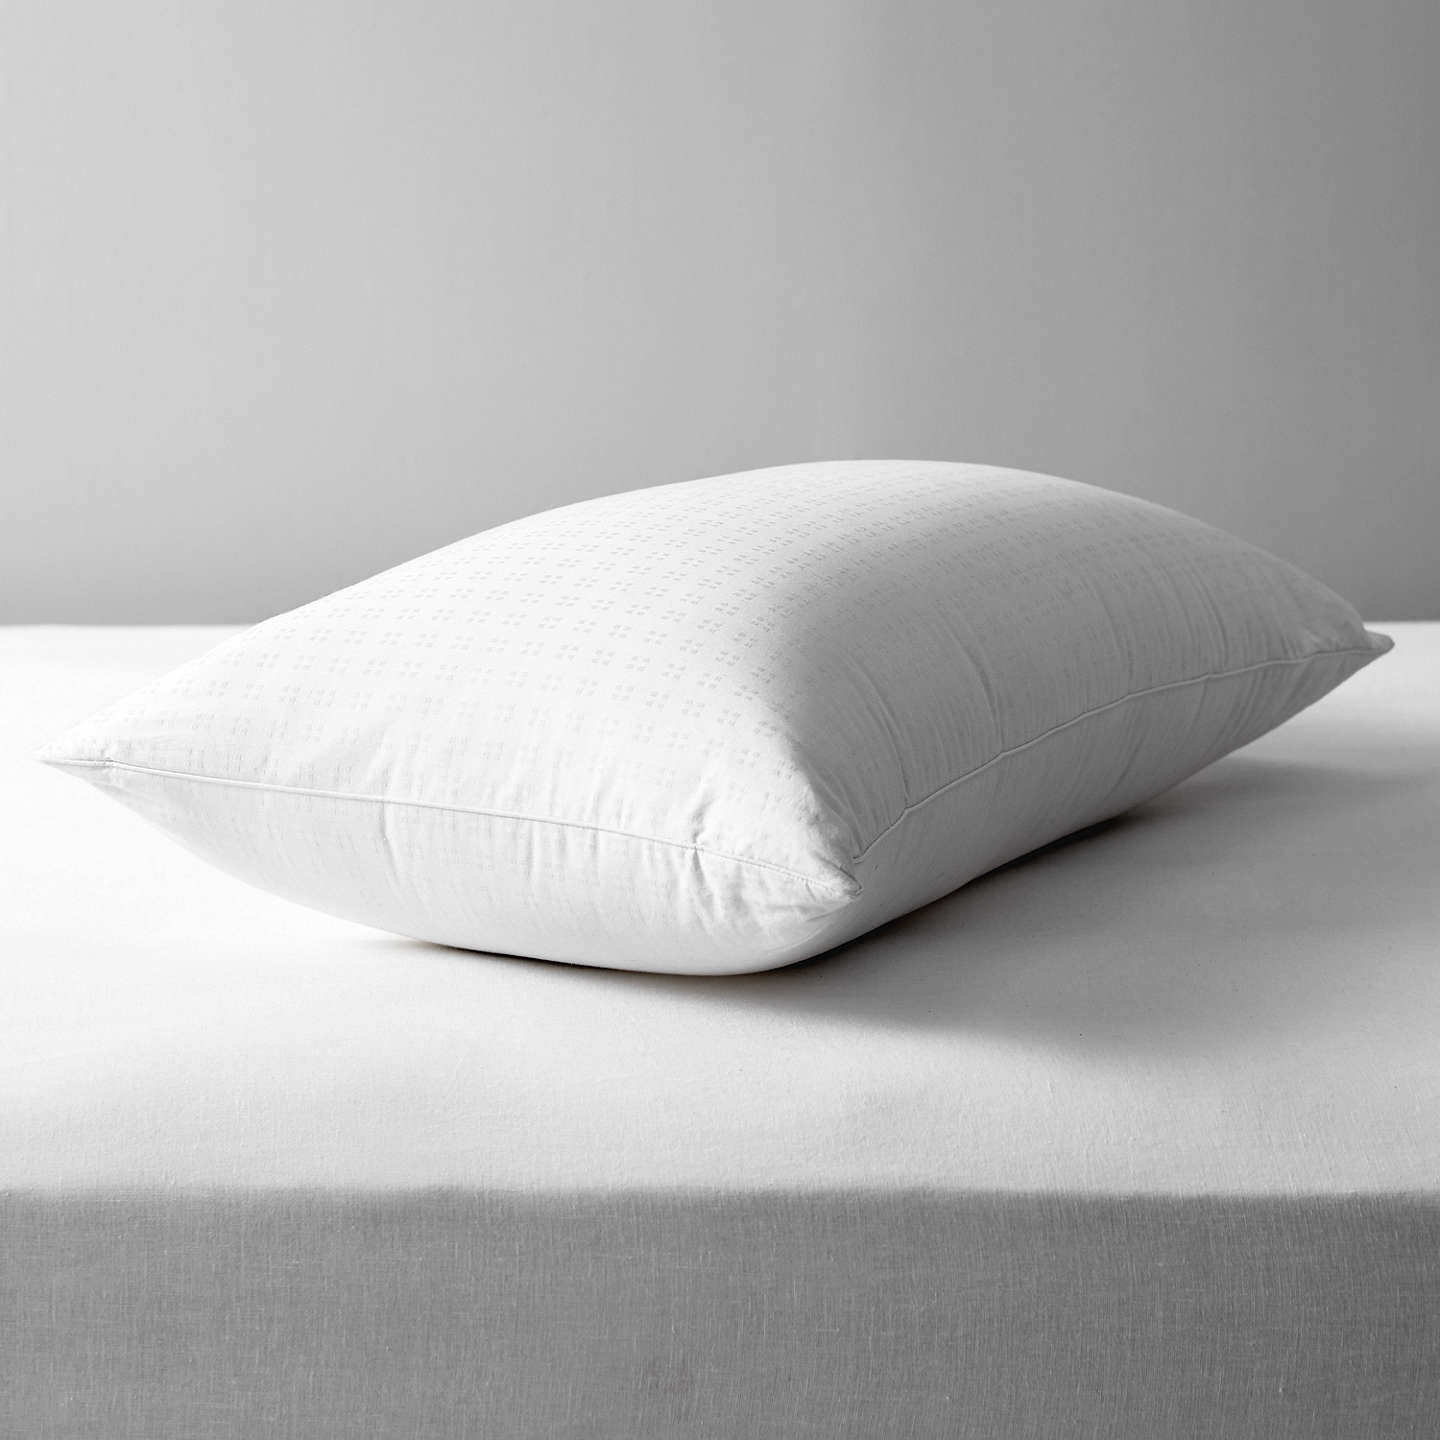 BuyJohn Lewis Natural Collection Siberian Goose Down Standard Pillow, Soft Online at johnlewis.com